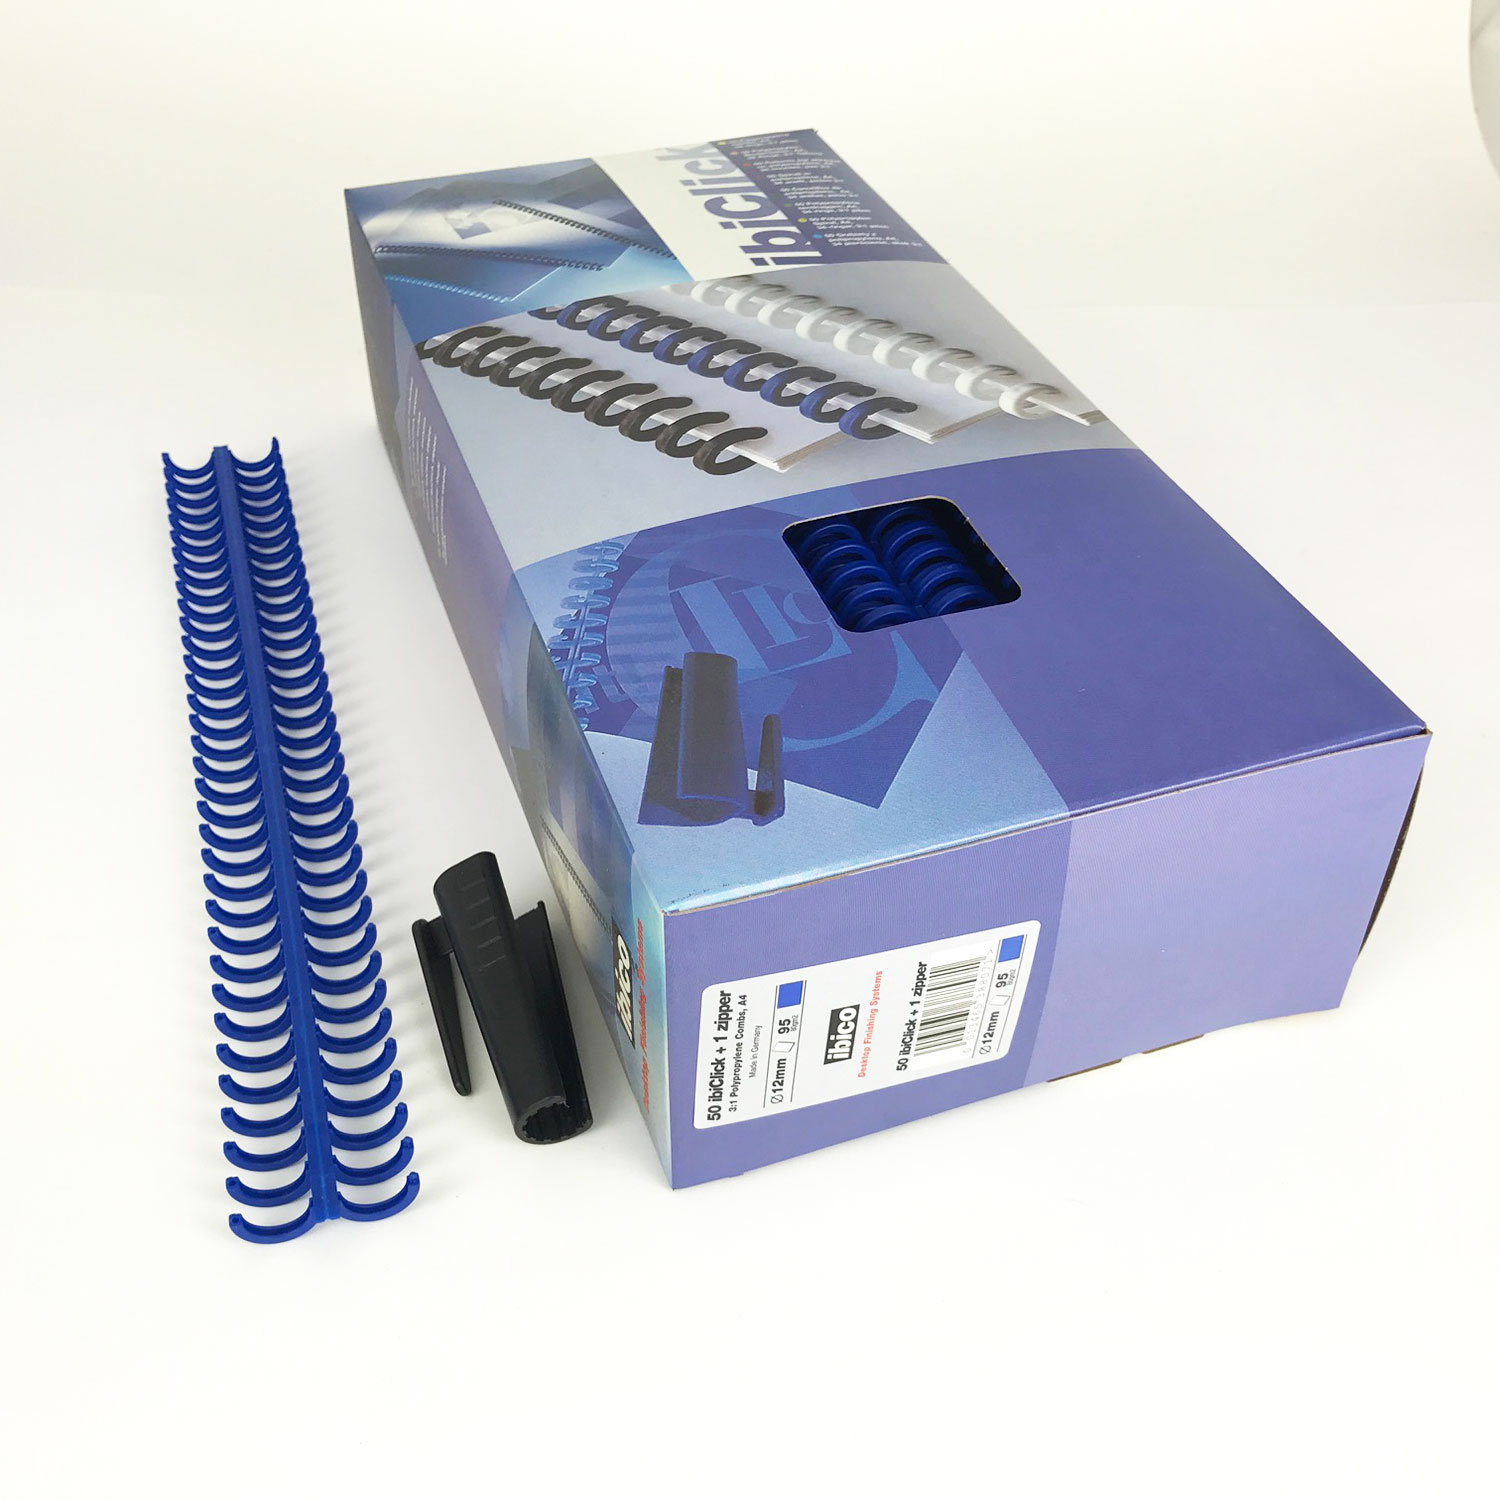 GBC Ibiclick ClickBind A4 Spines 12mm Blue (250)